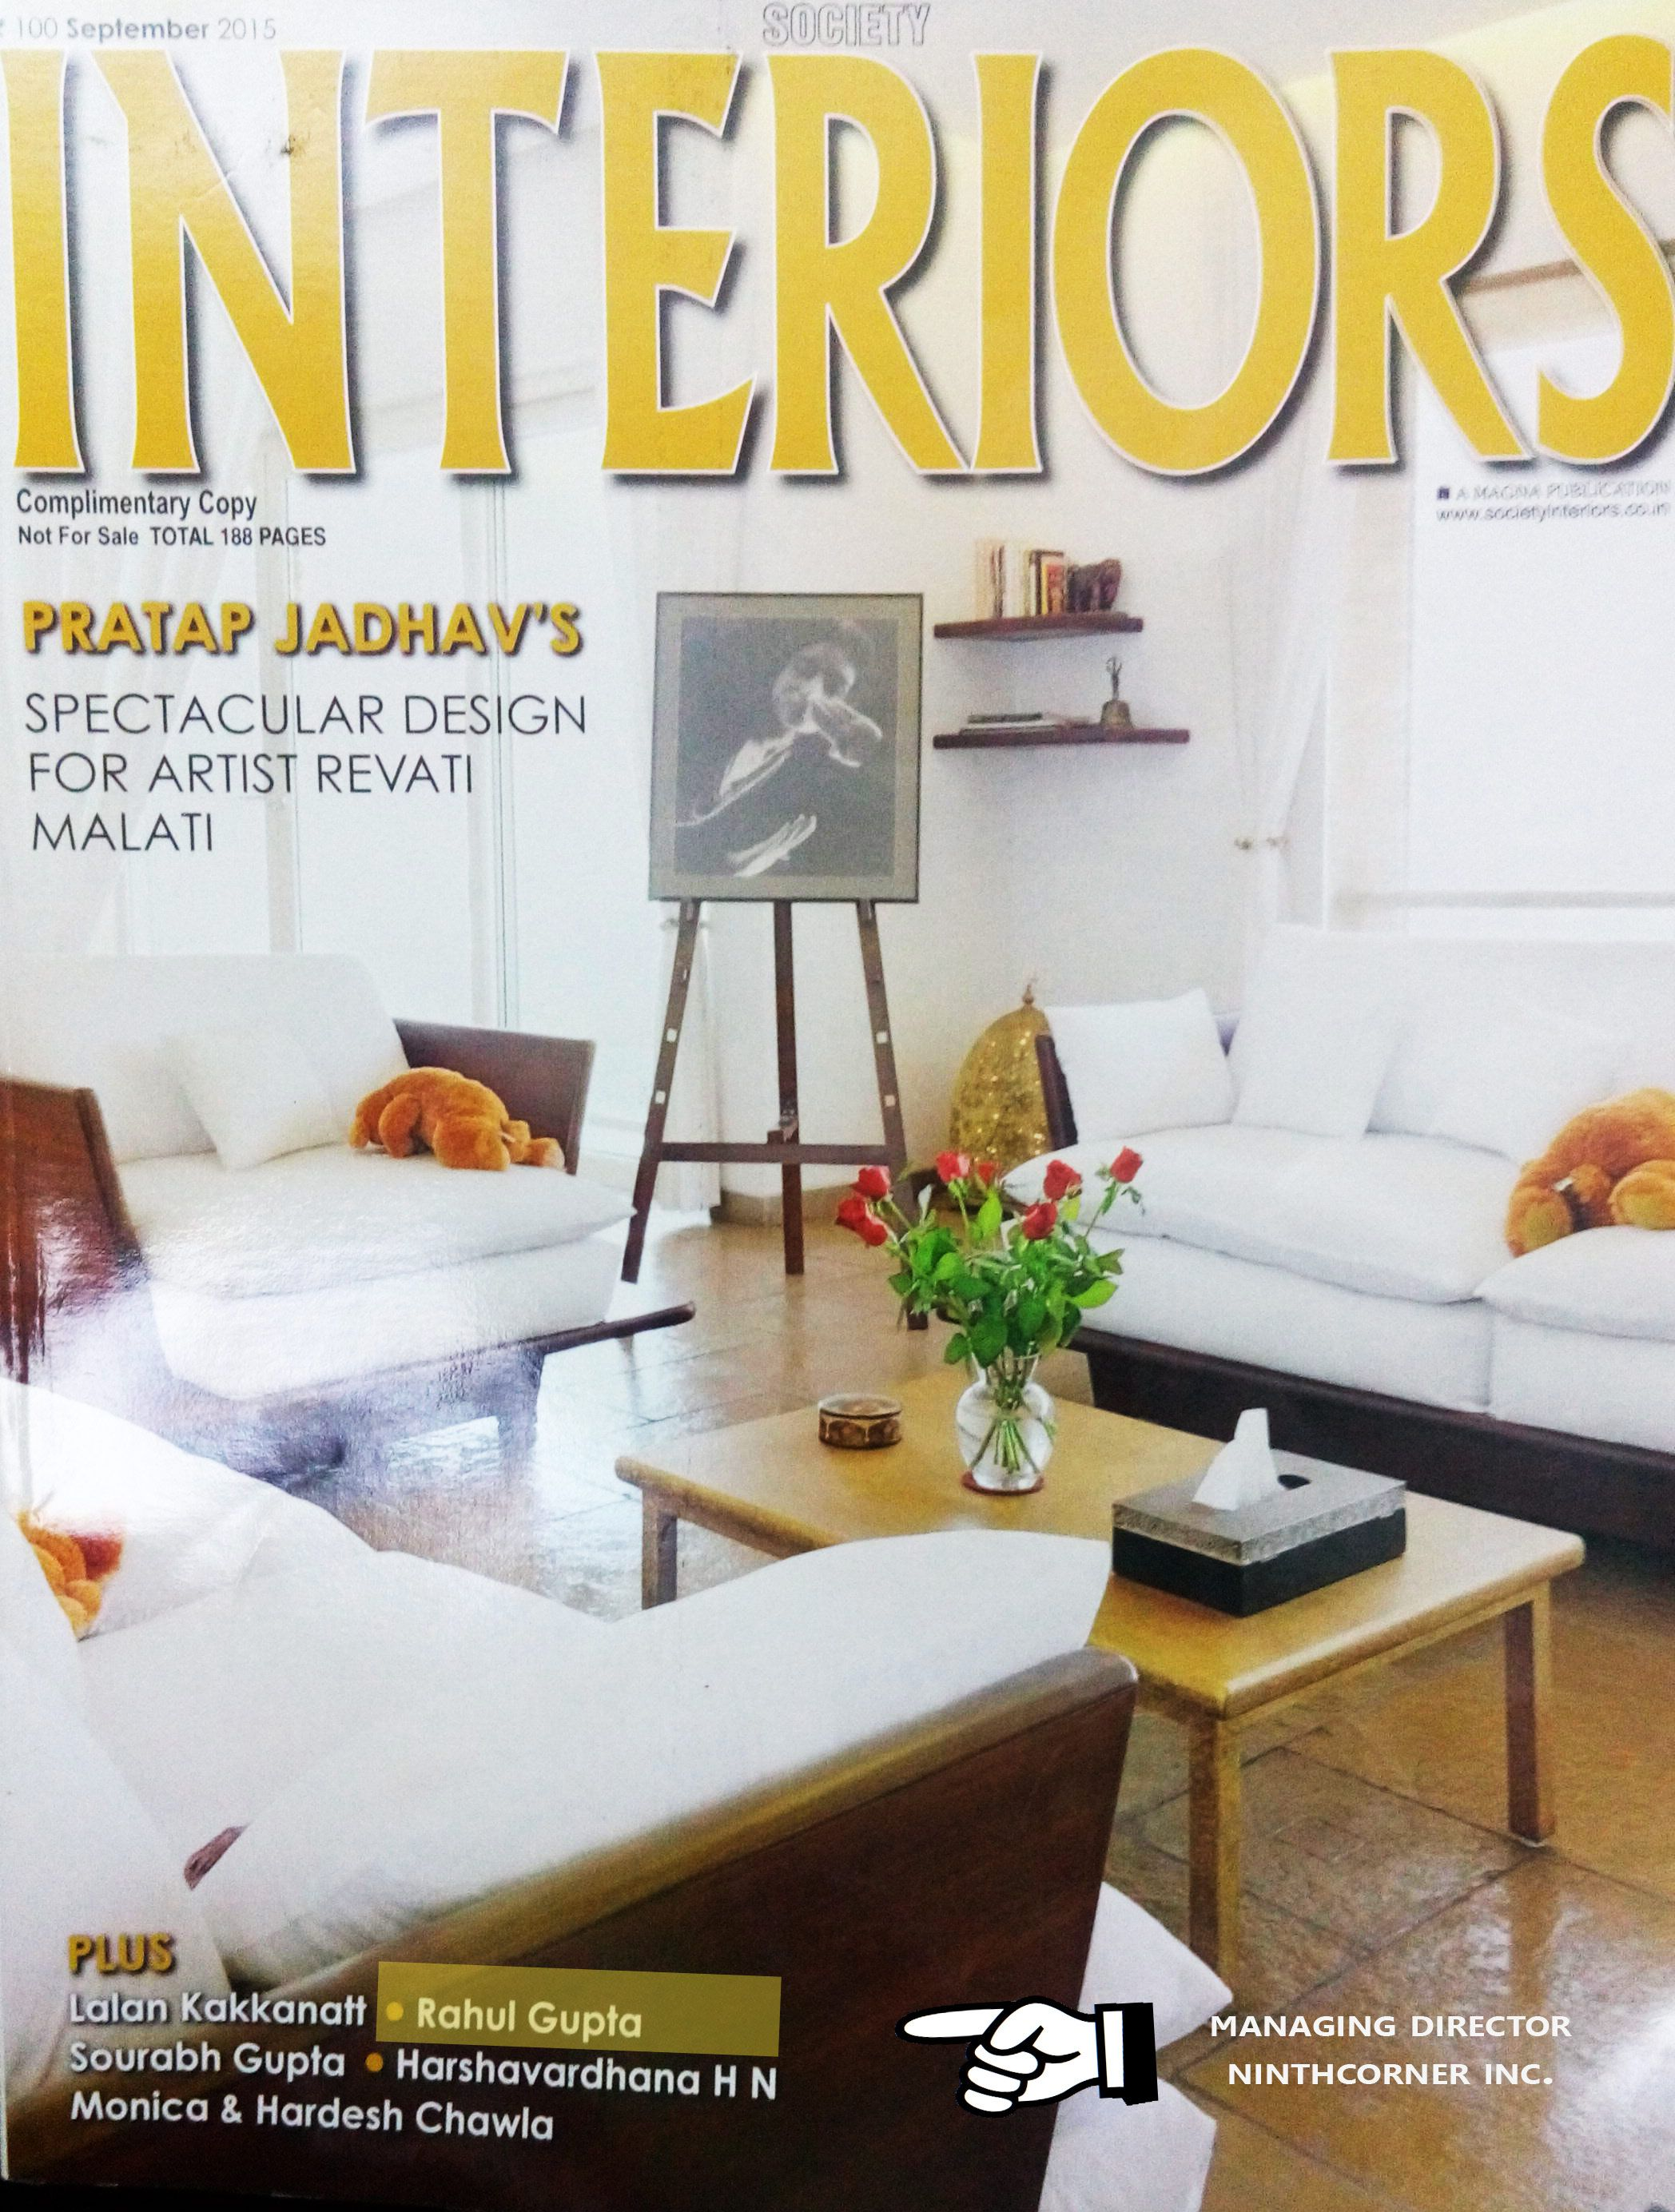 SOCIETY INTERIORS MAGAZINE PDF